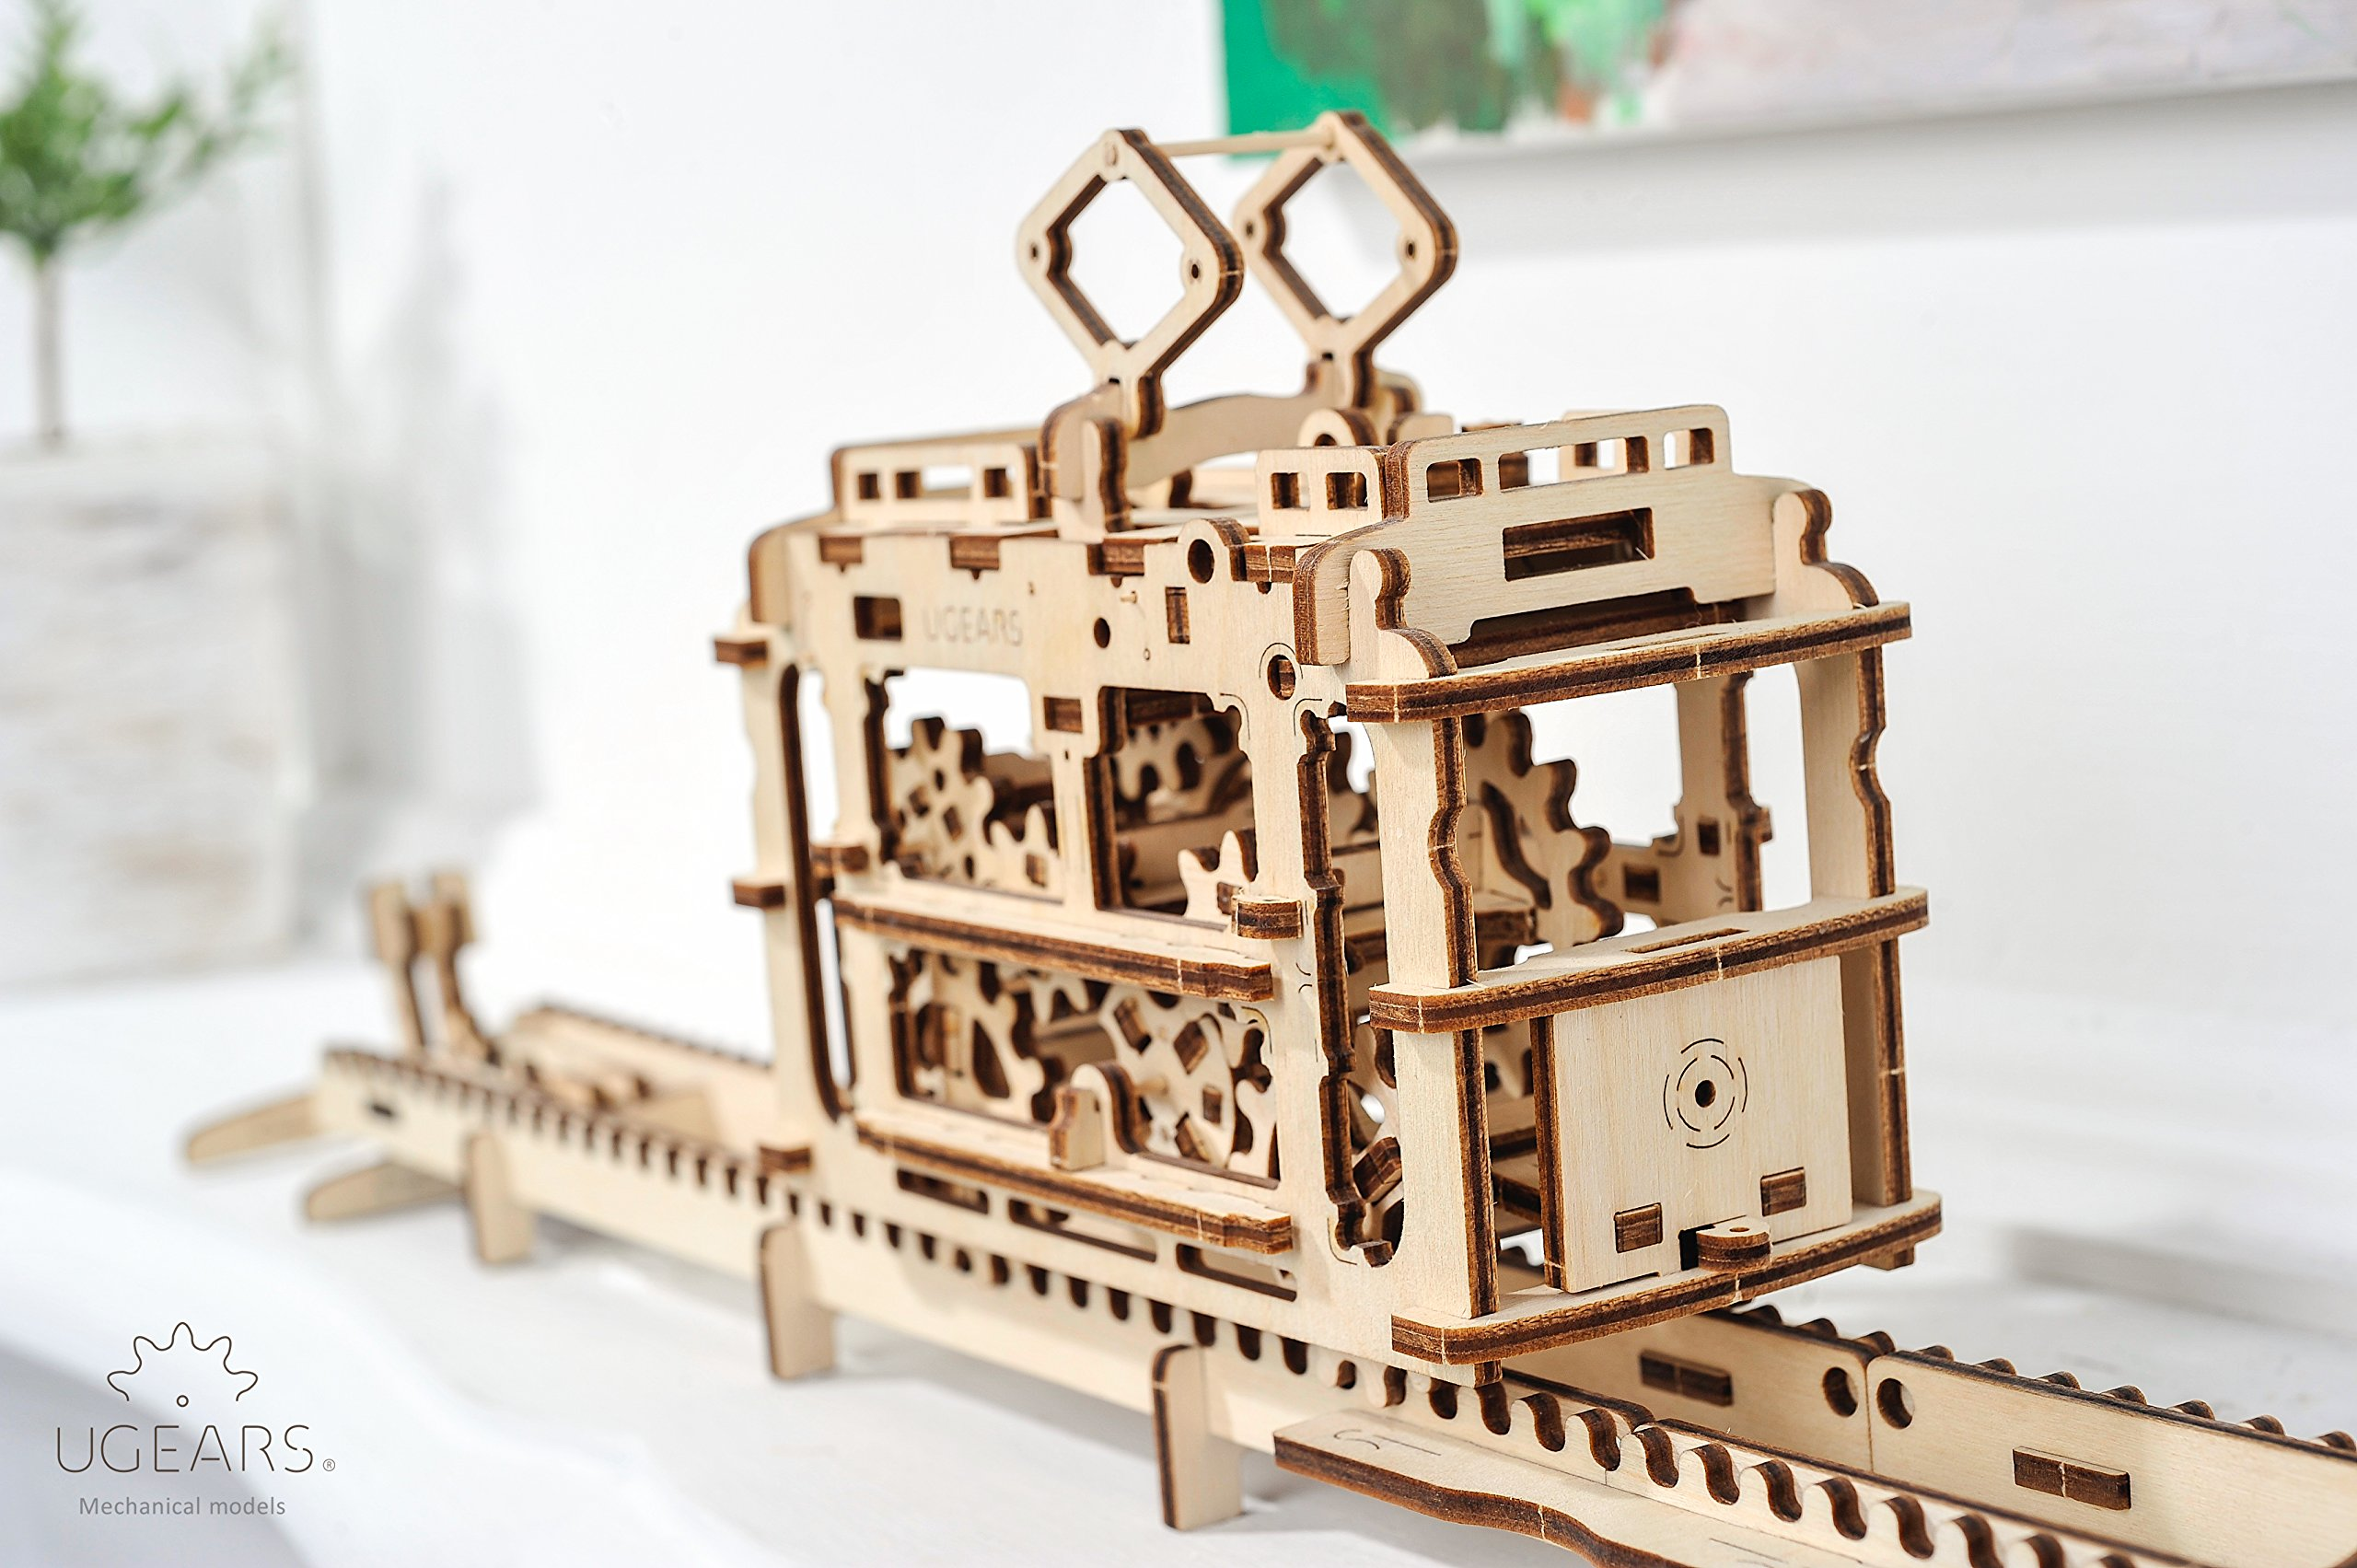 UGears Wooden Puzzle, 3D Mechanical Craft Set, Christmas and Thanksgiving Gift, Engineering Adult Game, DIY Brain Teaser